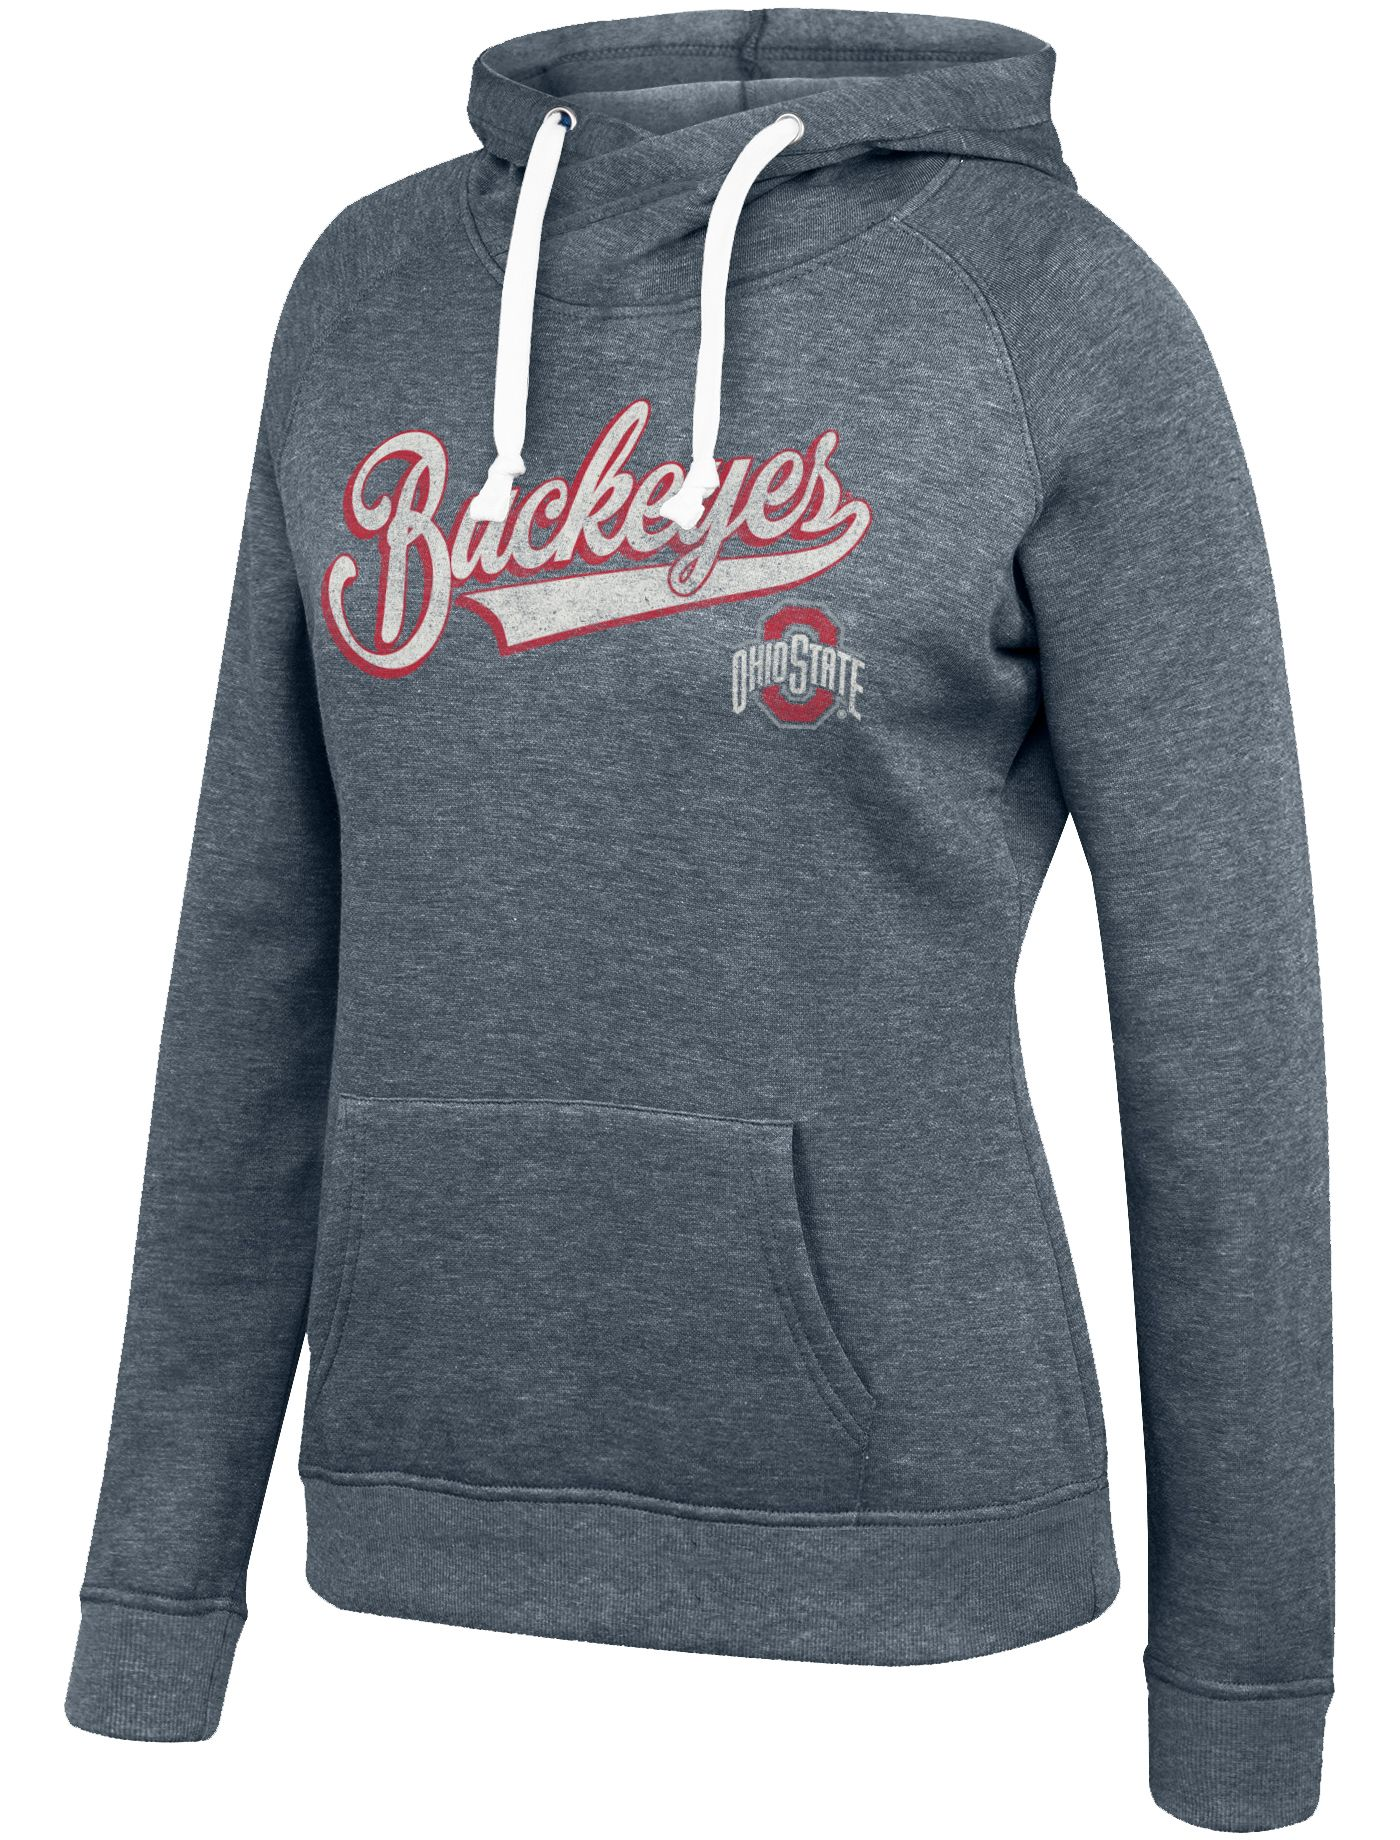 Scarlet & Gray Women's Ohio State Buckeyes Gray Tri-Blend Fleece Cross Hoodie